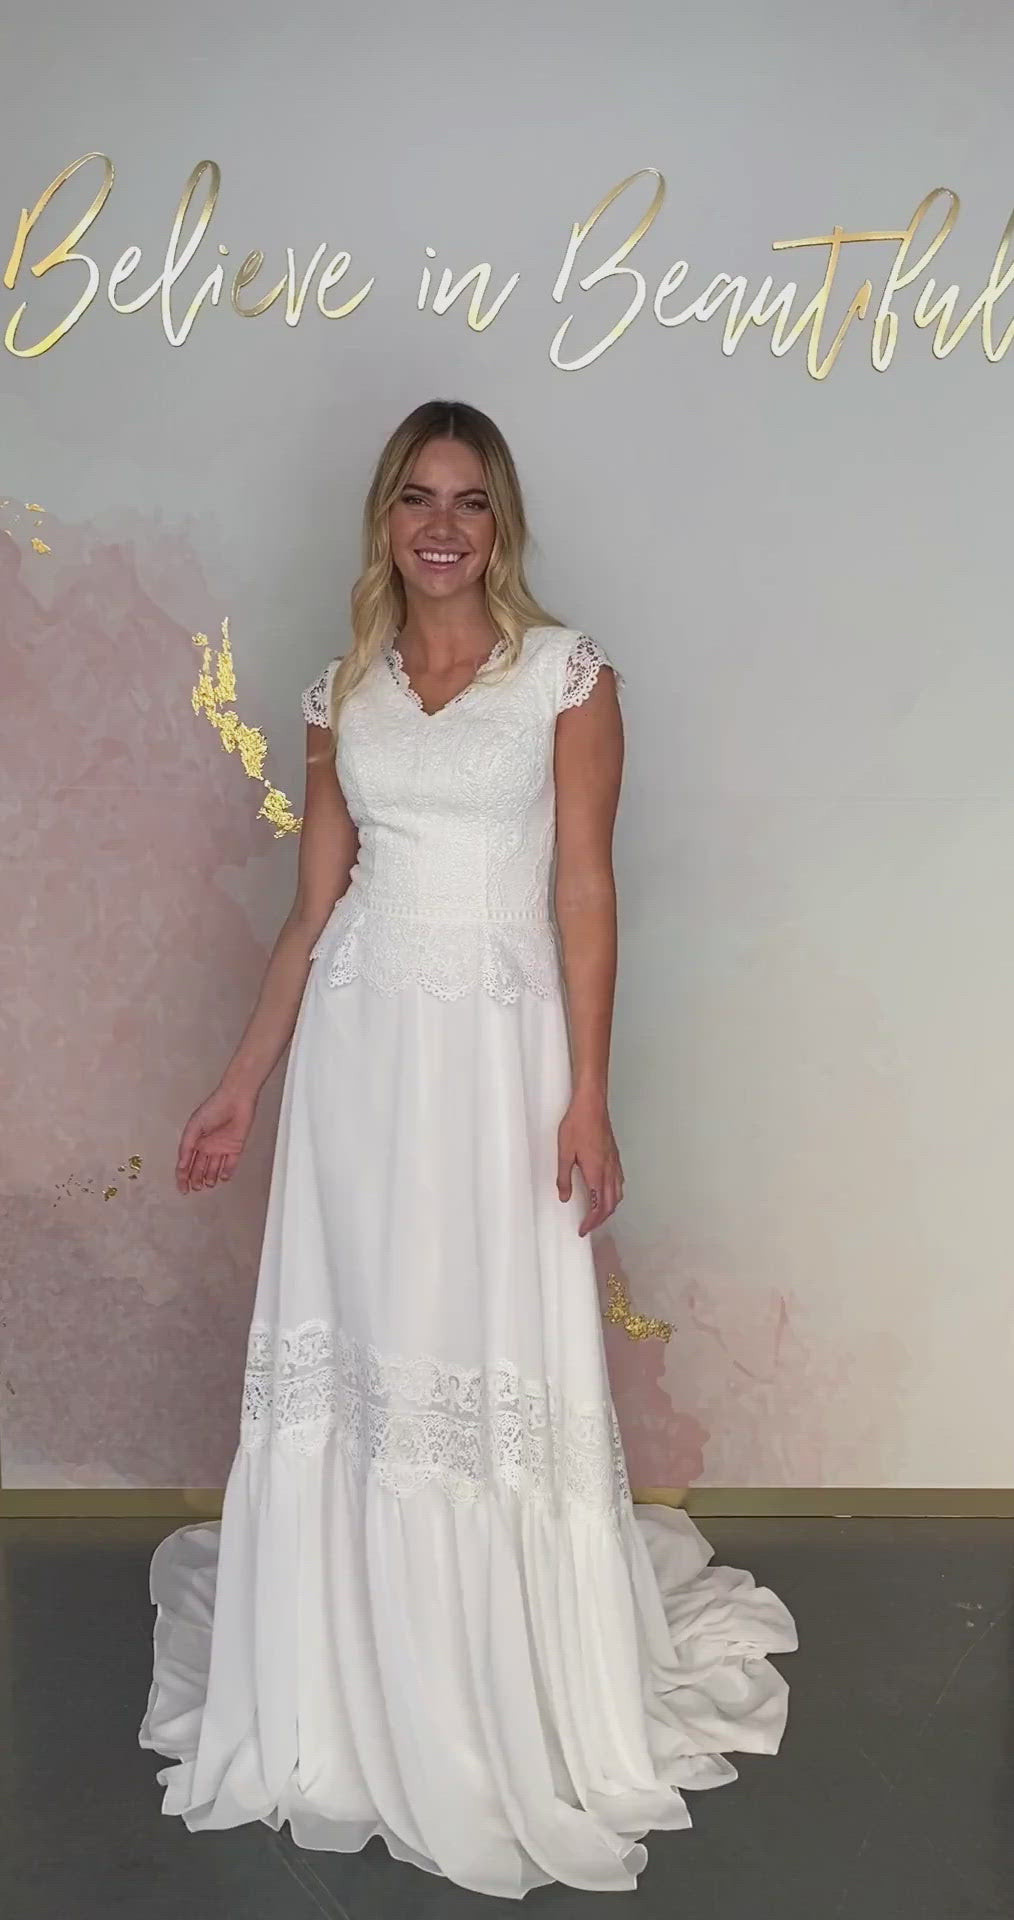 A video featuring our Karina wedding dress and its boho flowy chiffon skirt with lace detailing that matches the lace in the bodice.